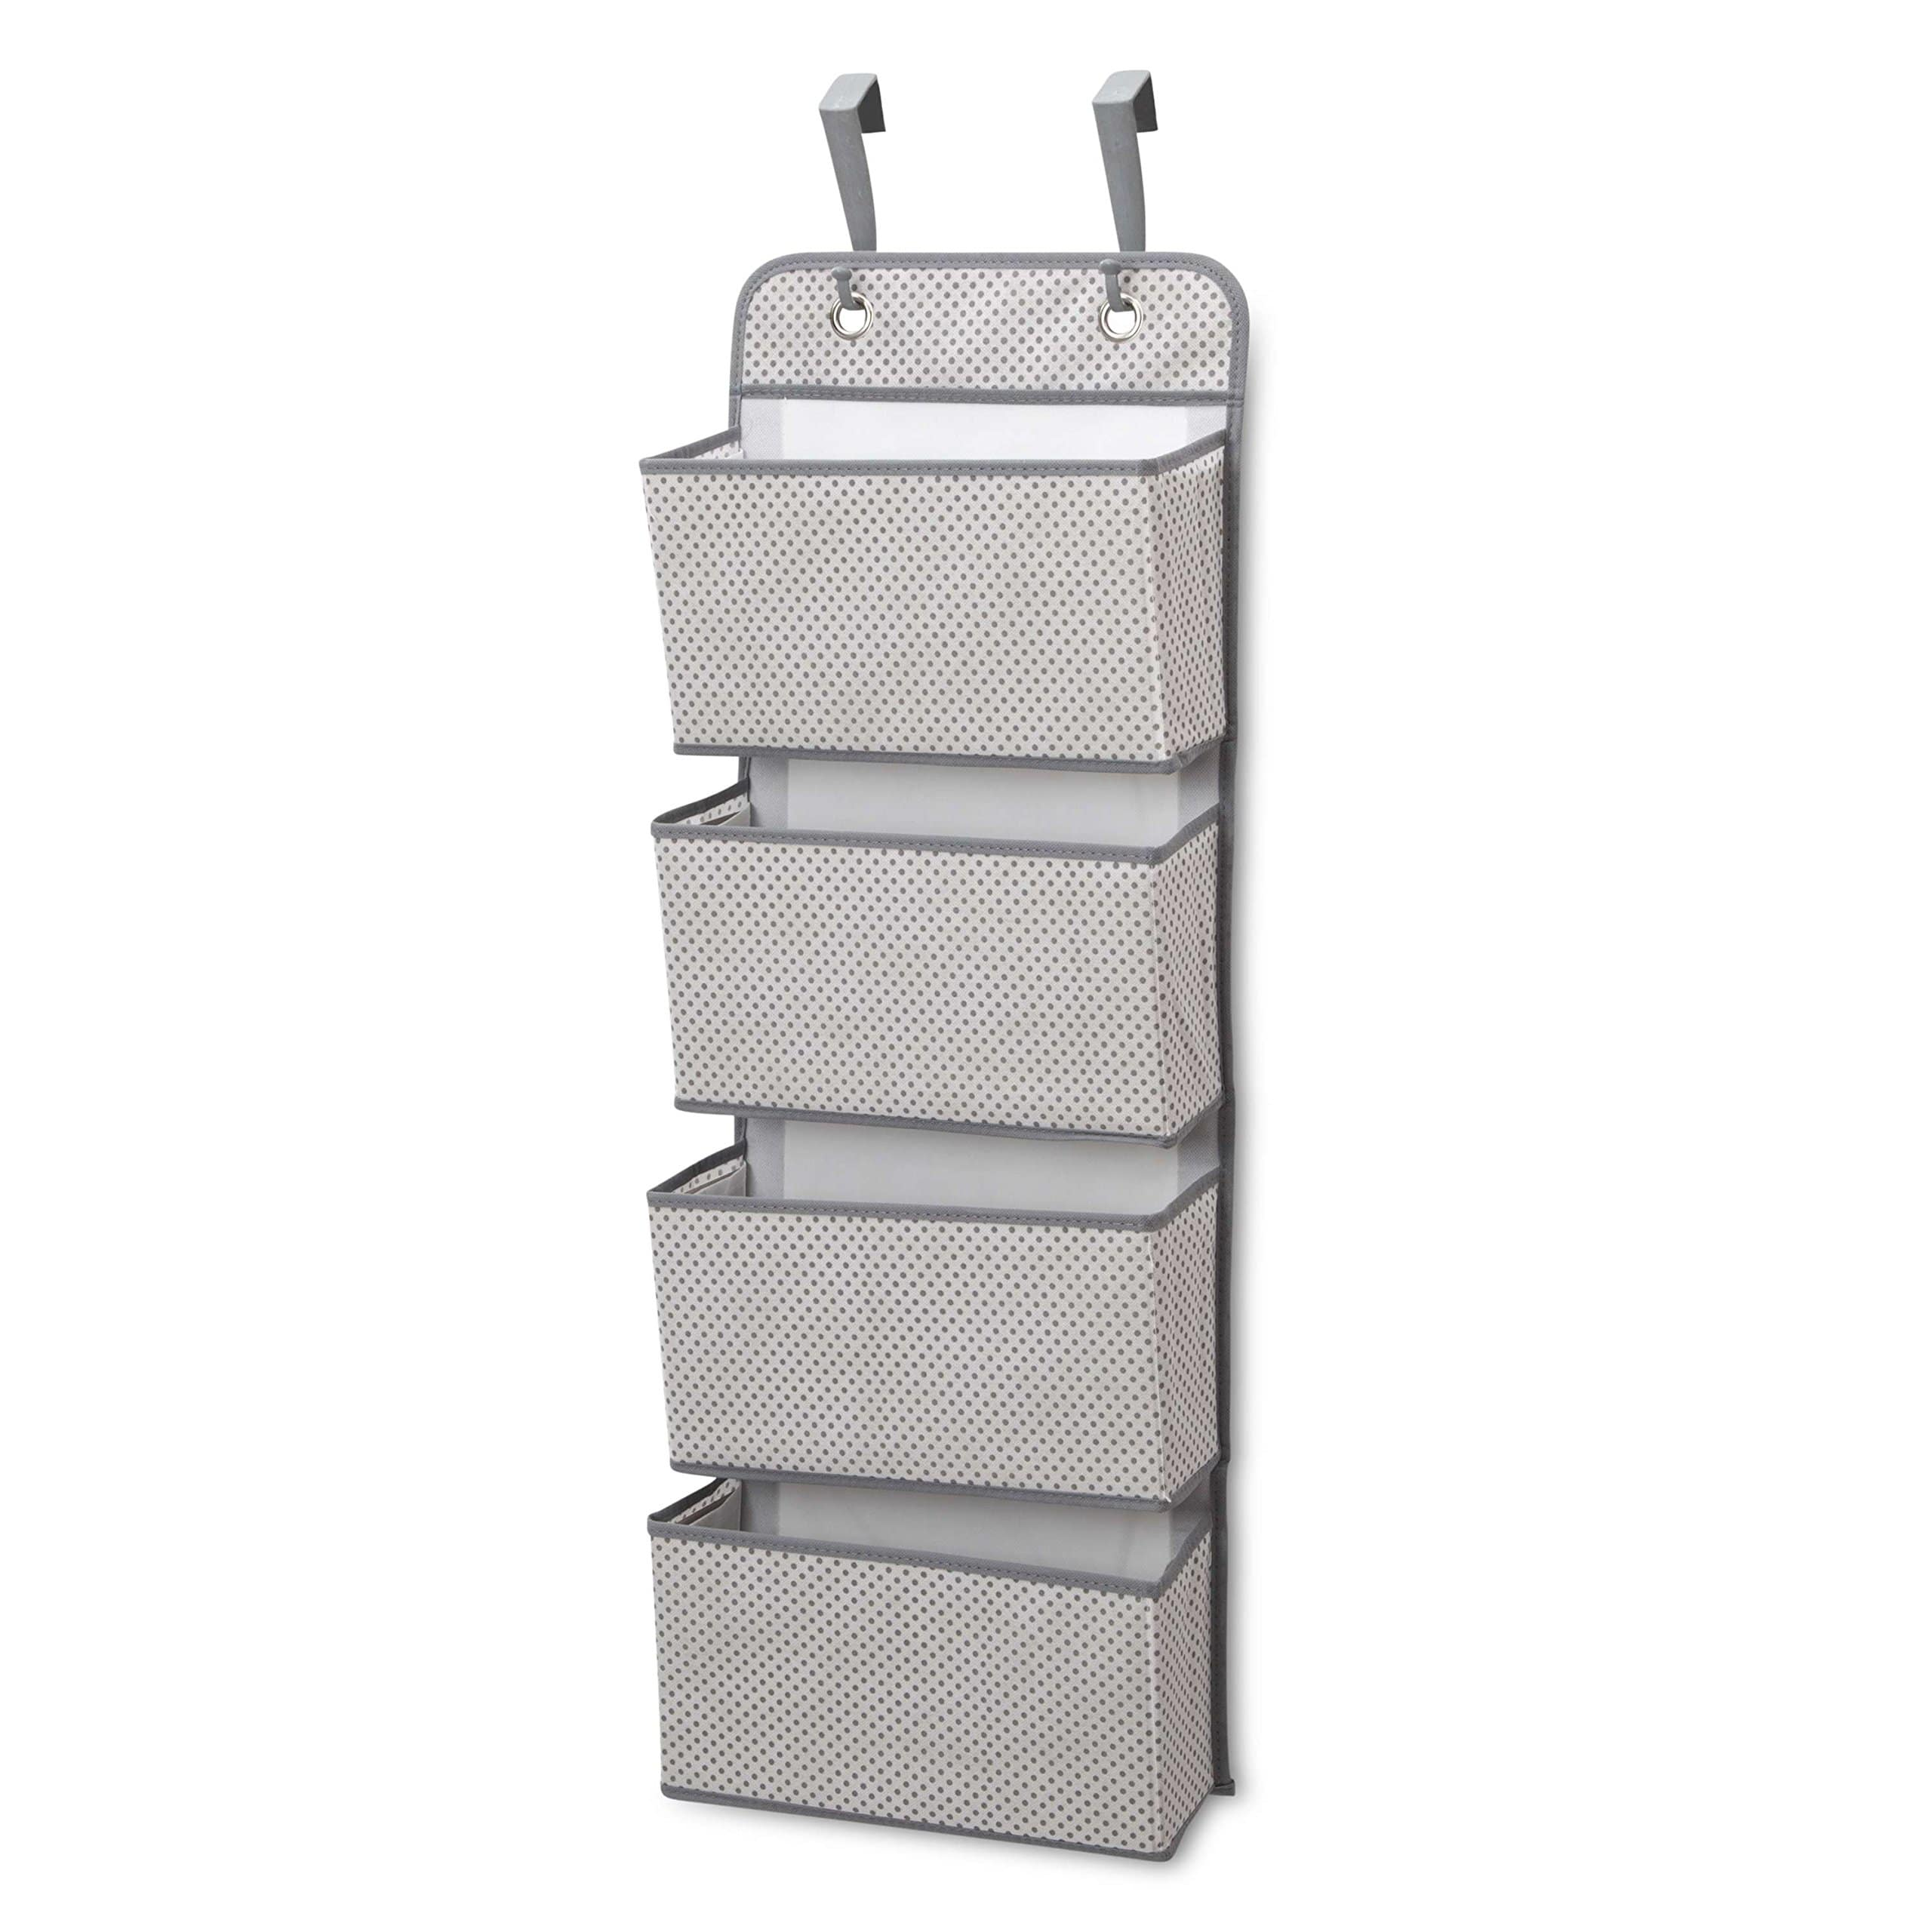 Delta Children 4-Pocket Hanging Wall Organizer, Grey  for reduced price $4.99 (37% off) @amazon as Add-on item